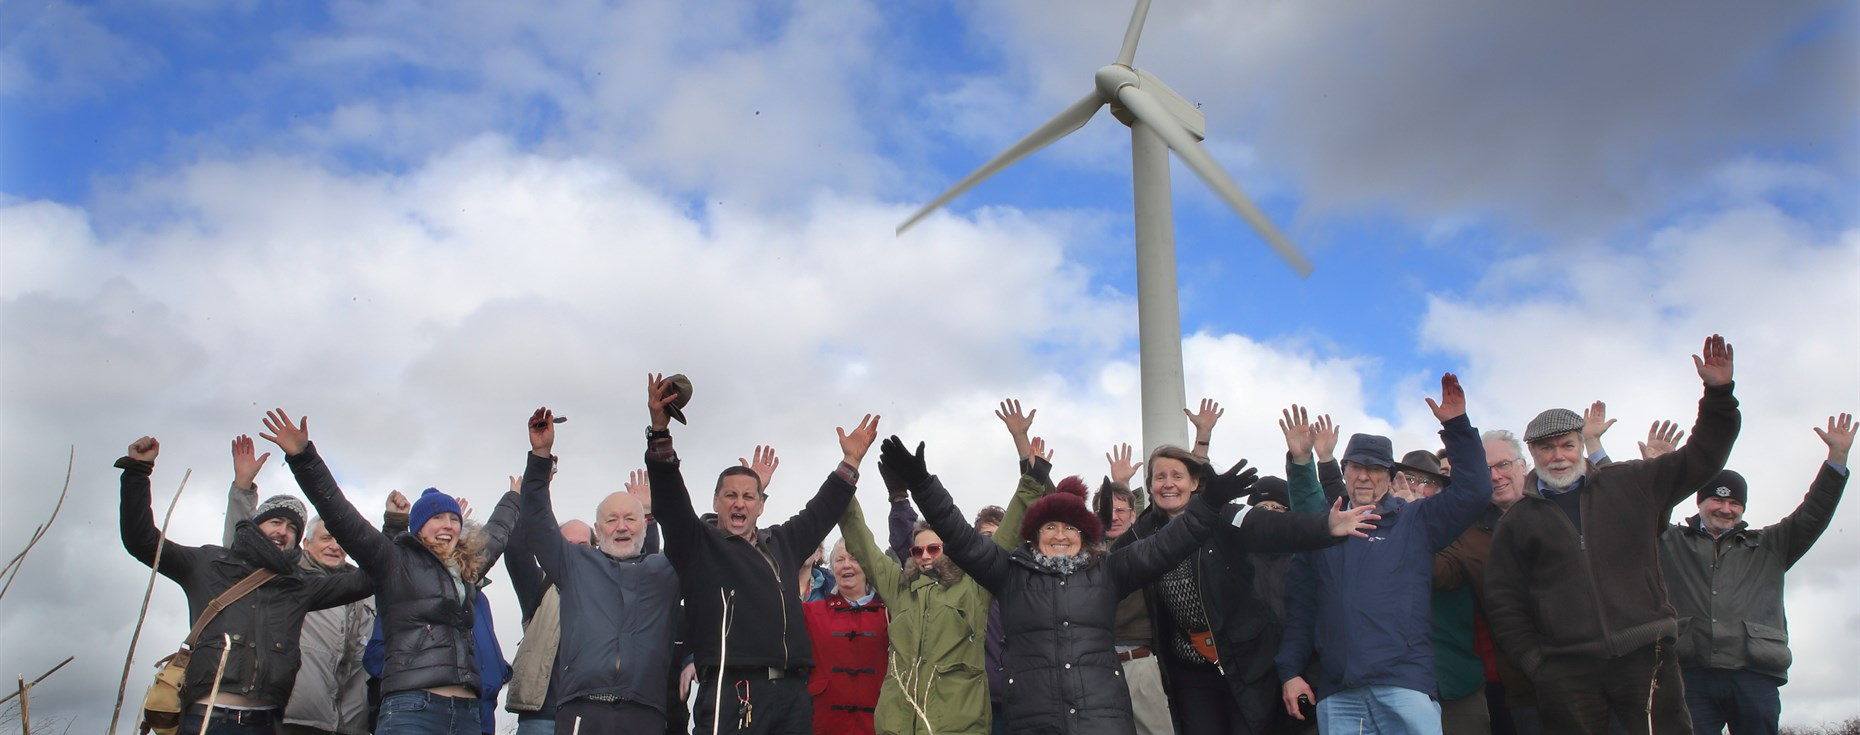 A leading role for community energy